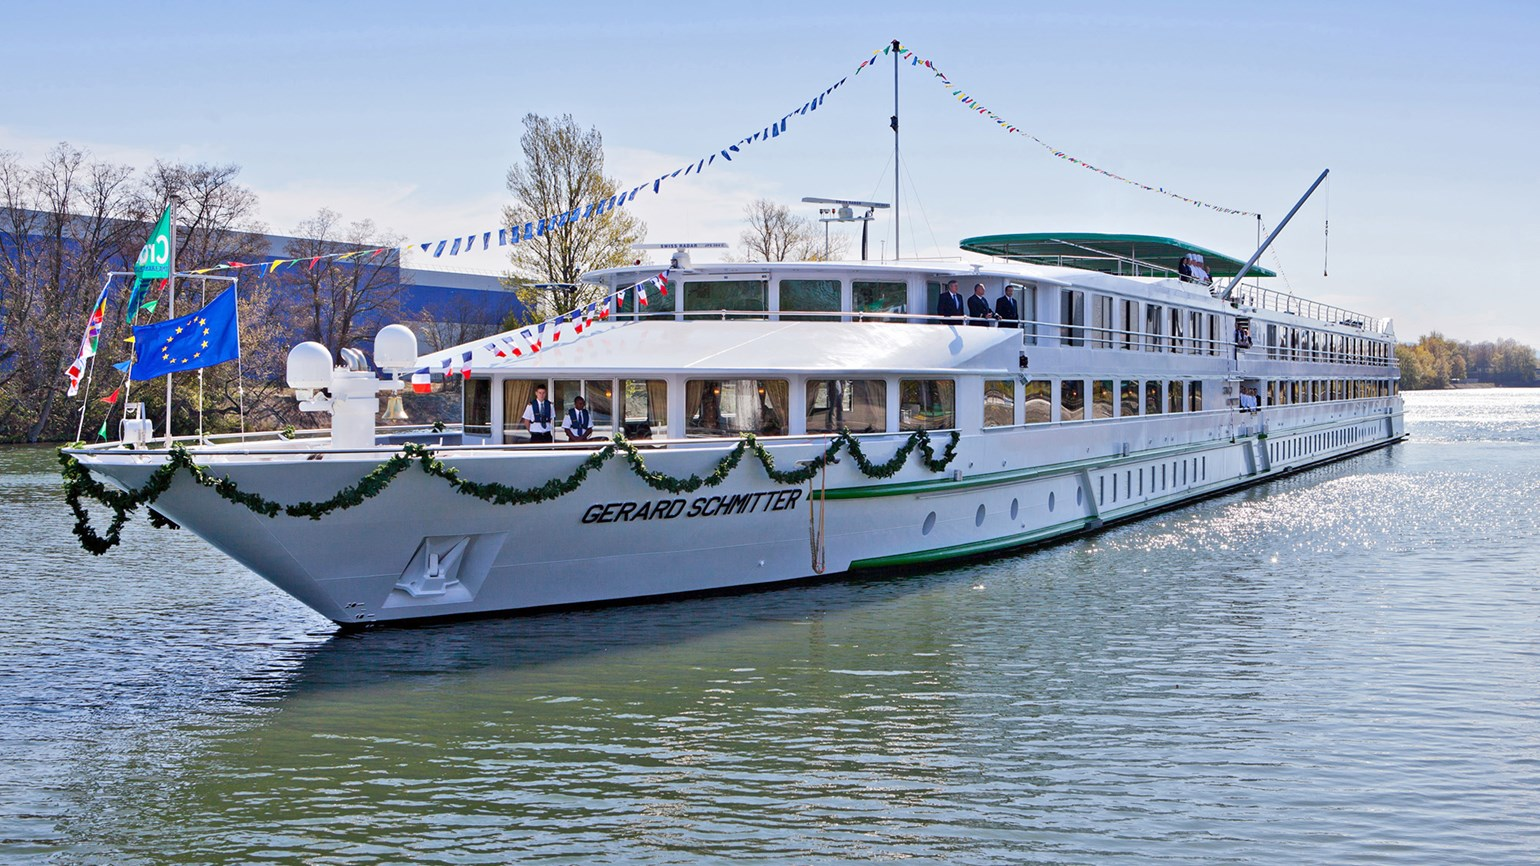 The 176-passenger Gerard Schmitter, named after CroisiEurope's founder, will sail the Rhine portion of the 40-day anniversary cruise.